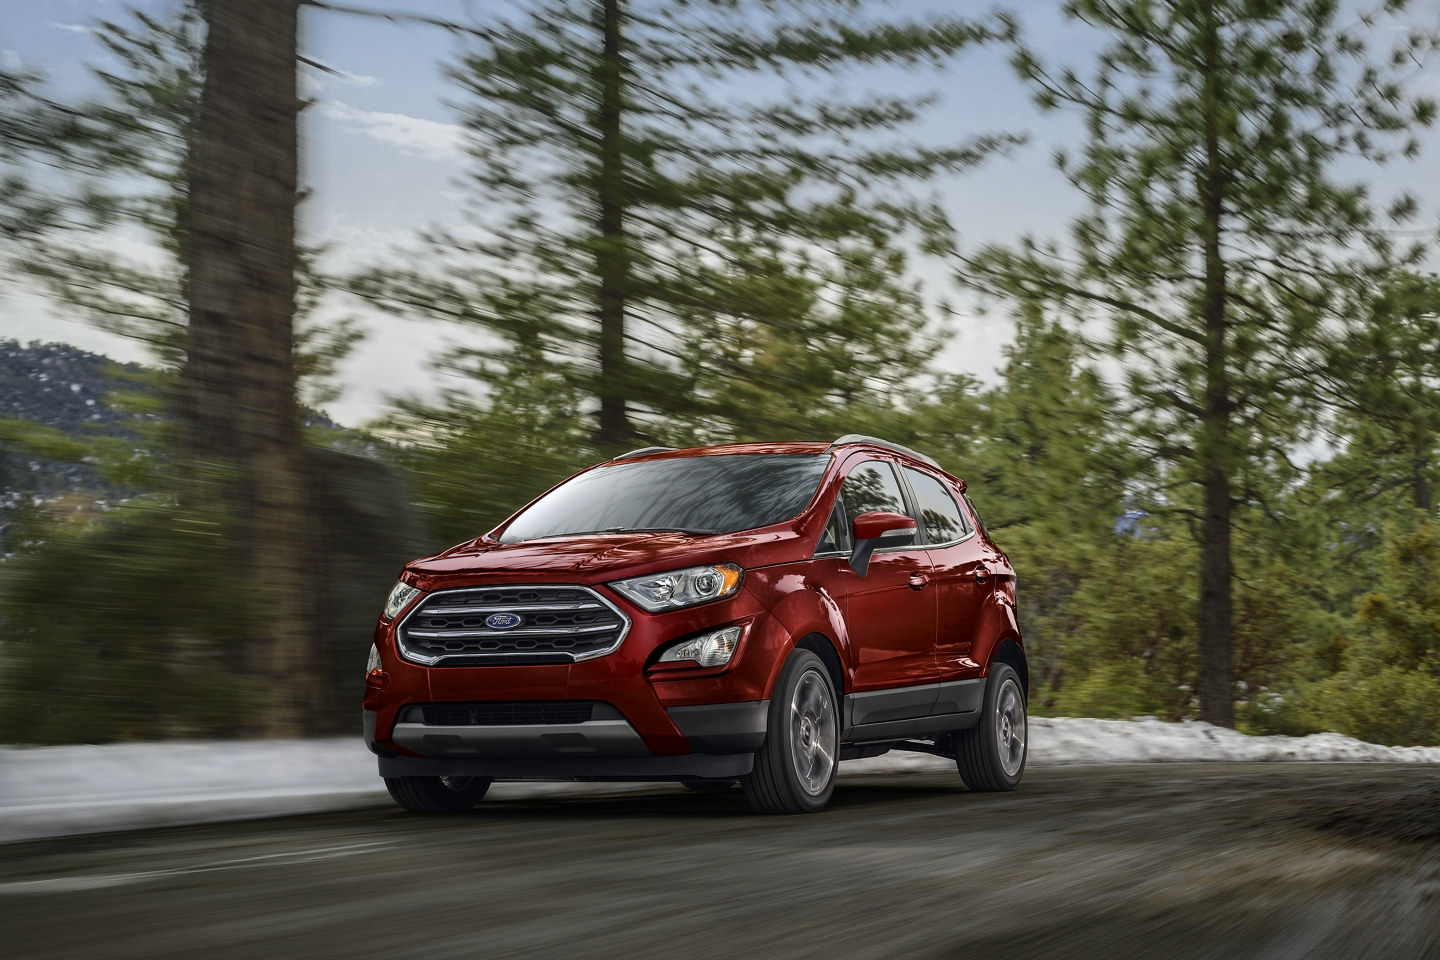 2020 Ford EcoSport for Sale near Oak Park, IL